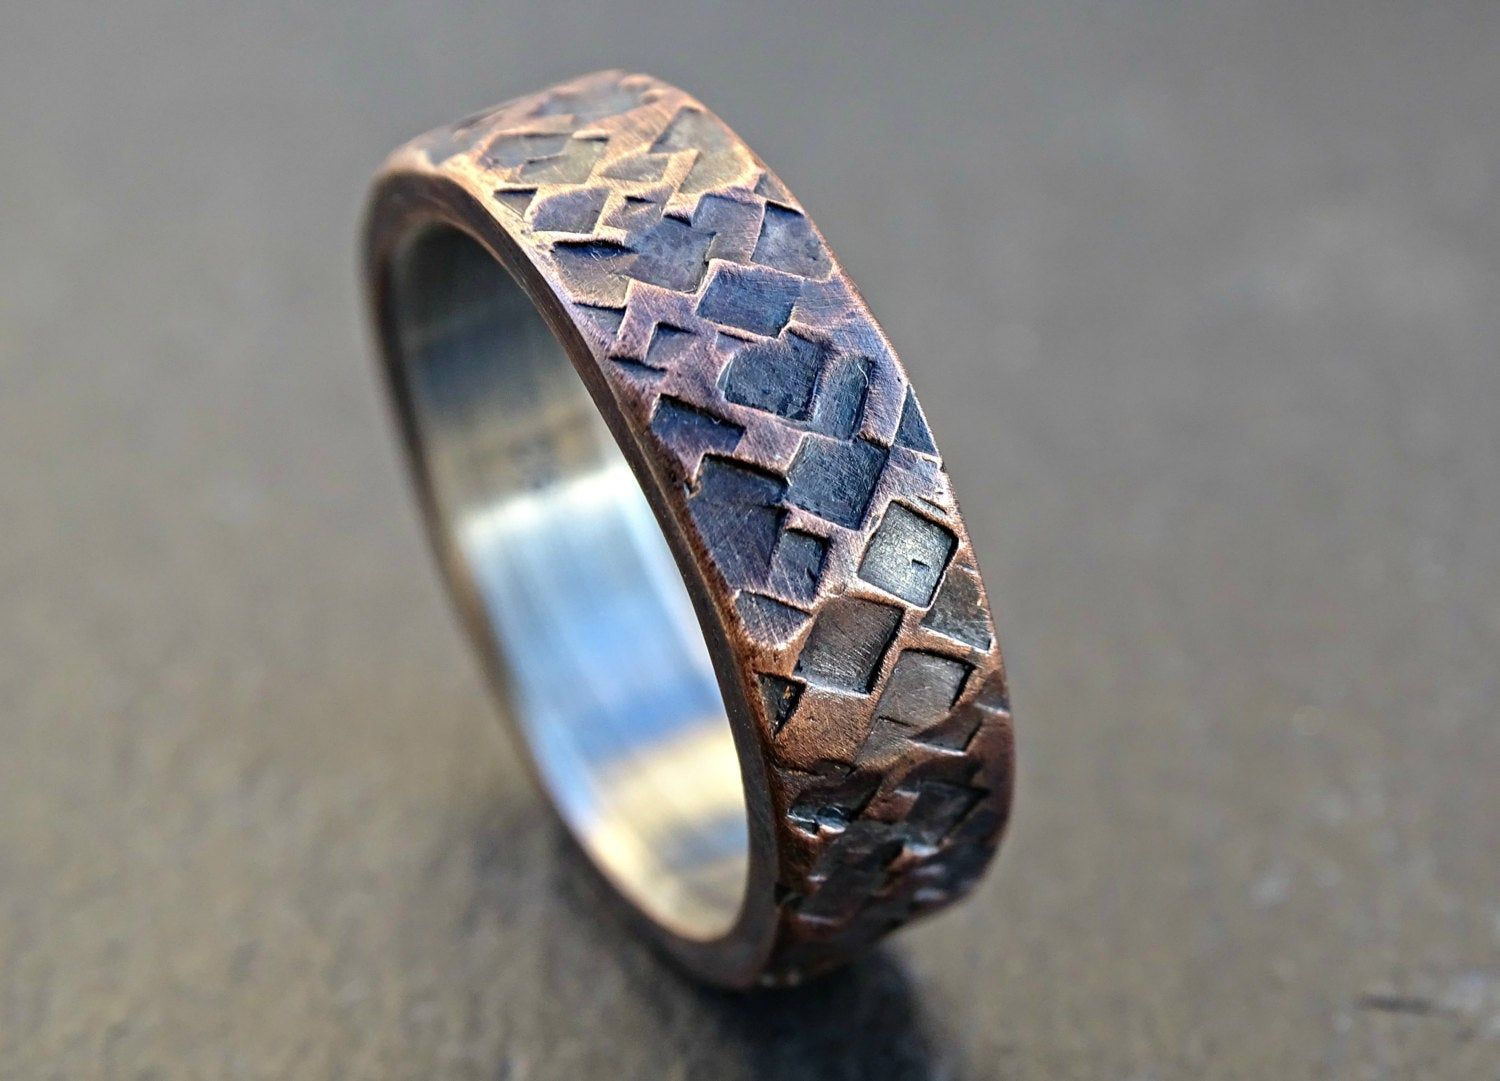 Rustic copper silver wedding ring, mens promise ring